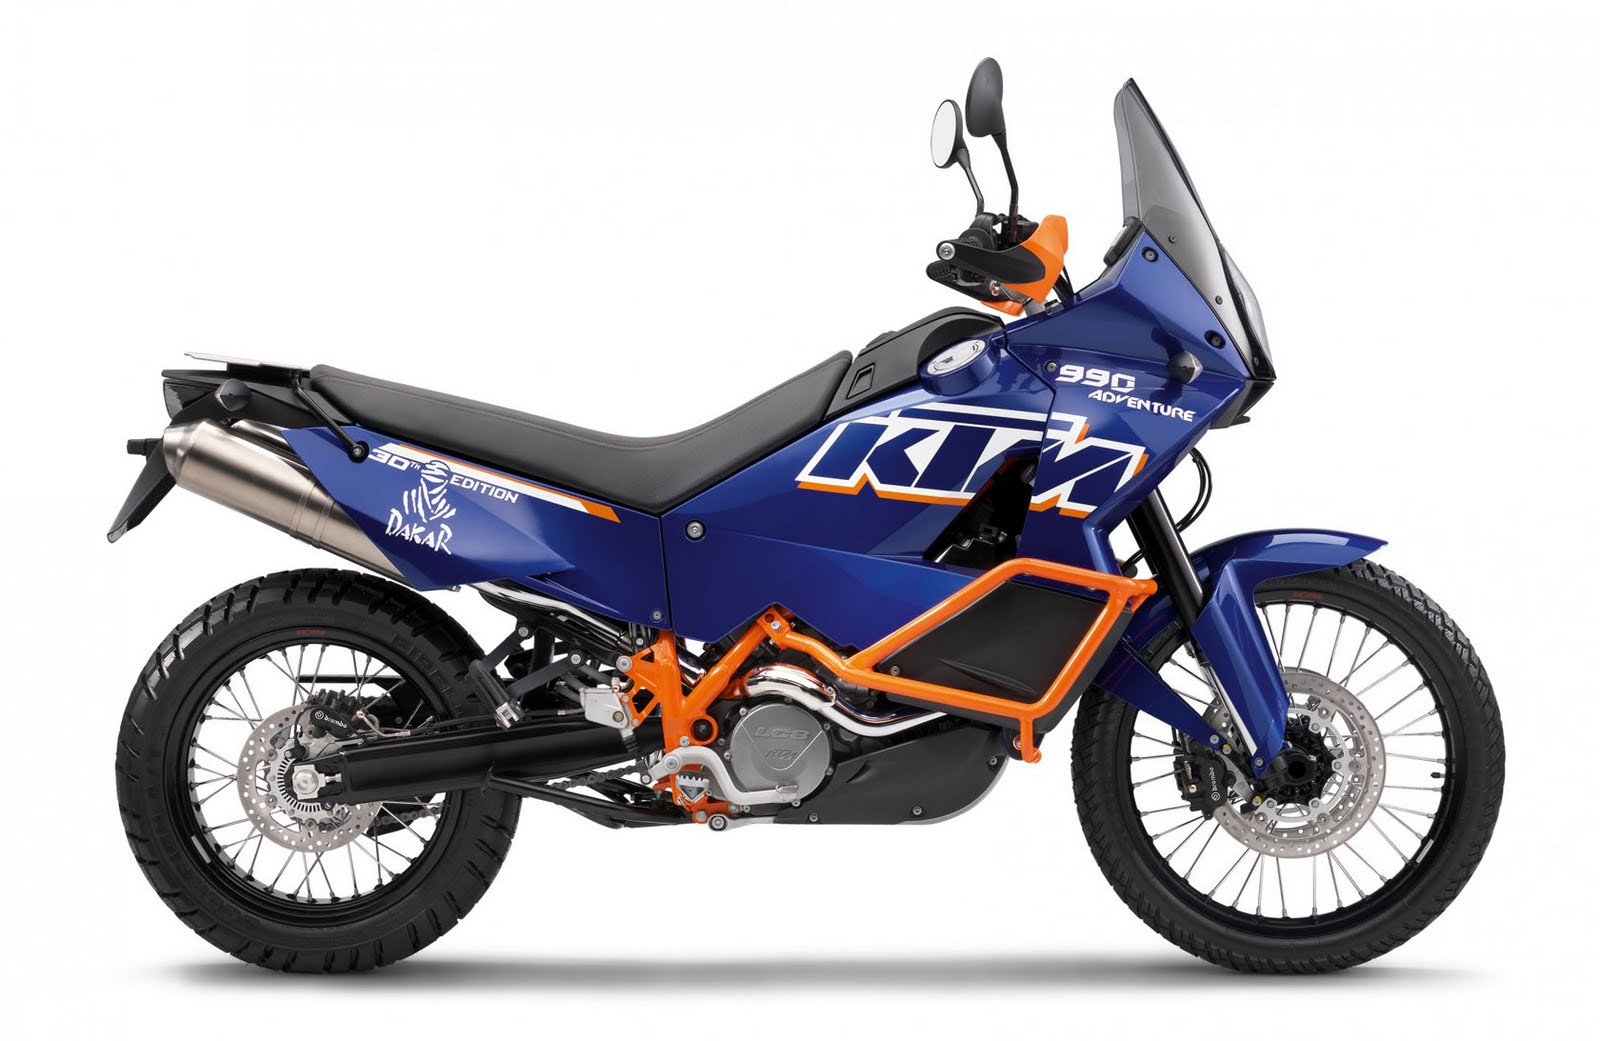 Motorcycle Pictures: KTM 990 Adventure Dakar 2011